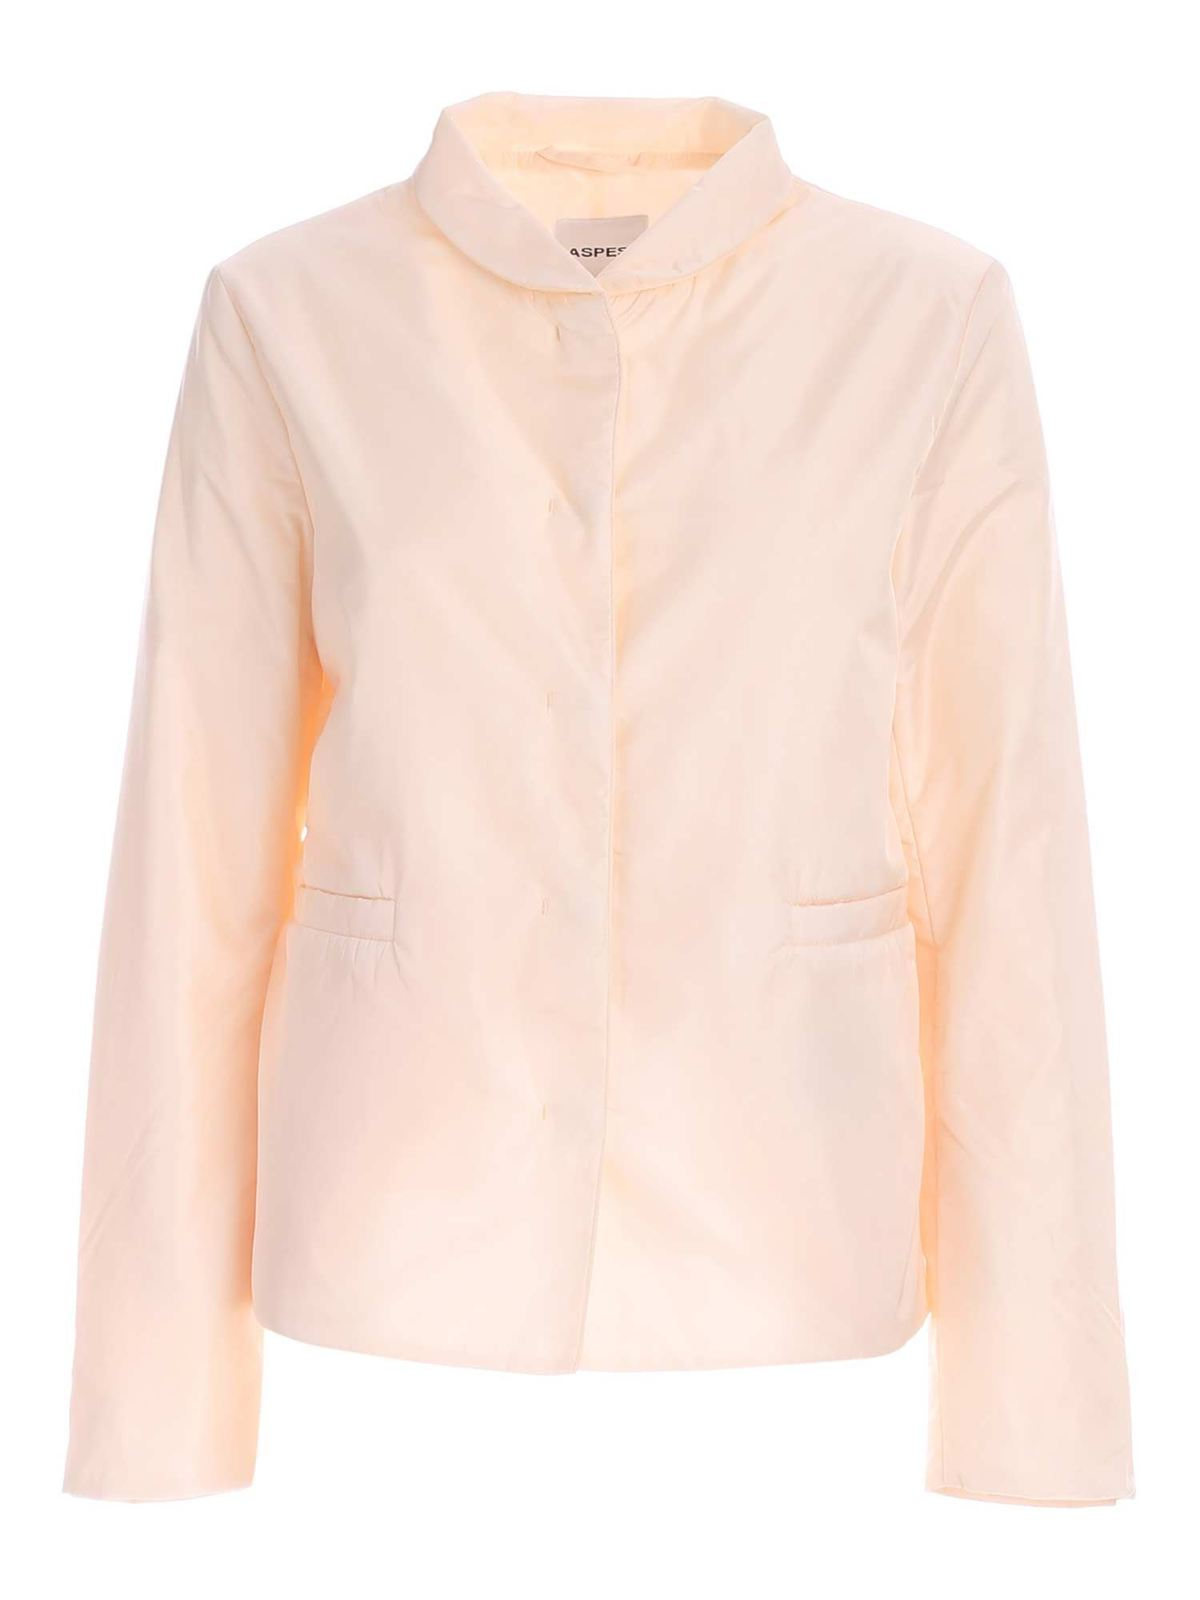 Aspesi MOSTARDA JACKET IN CREAM COLOR